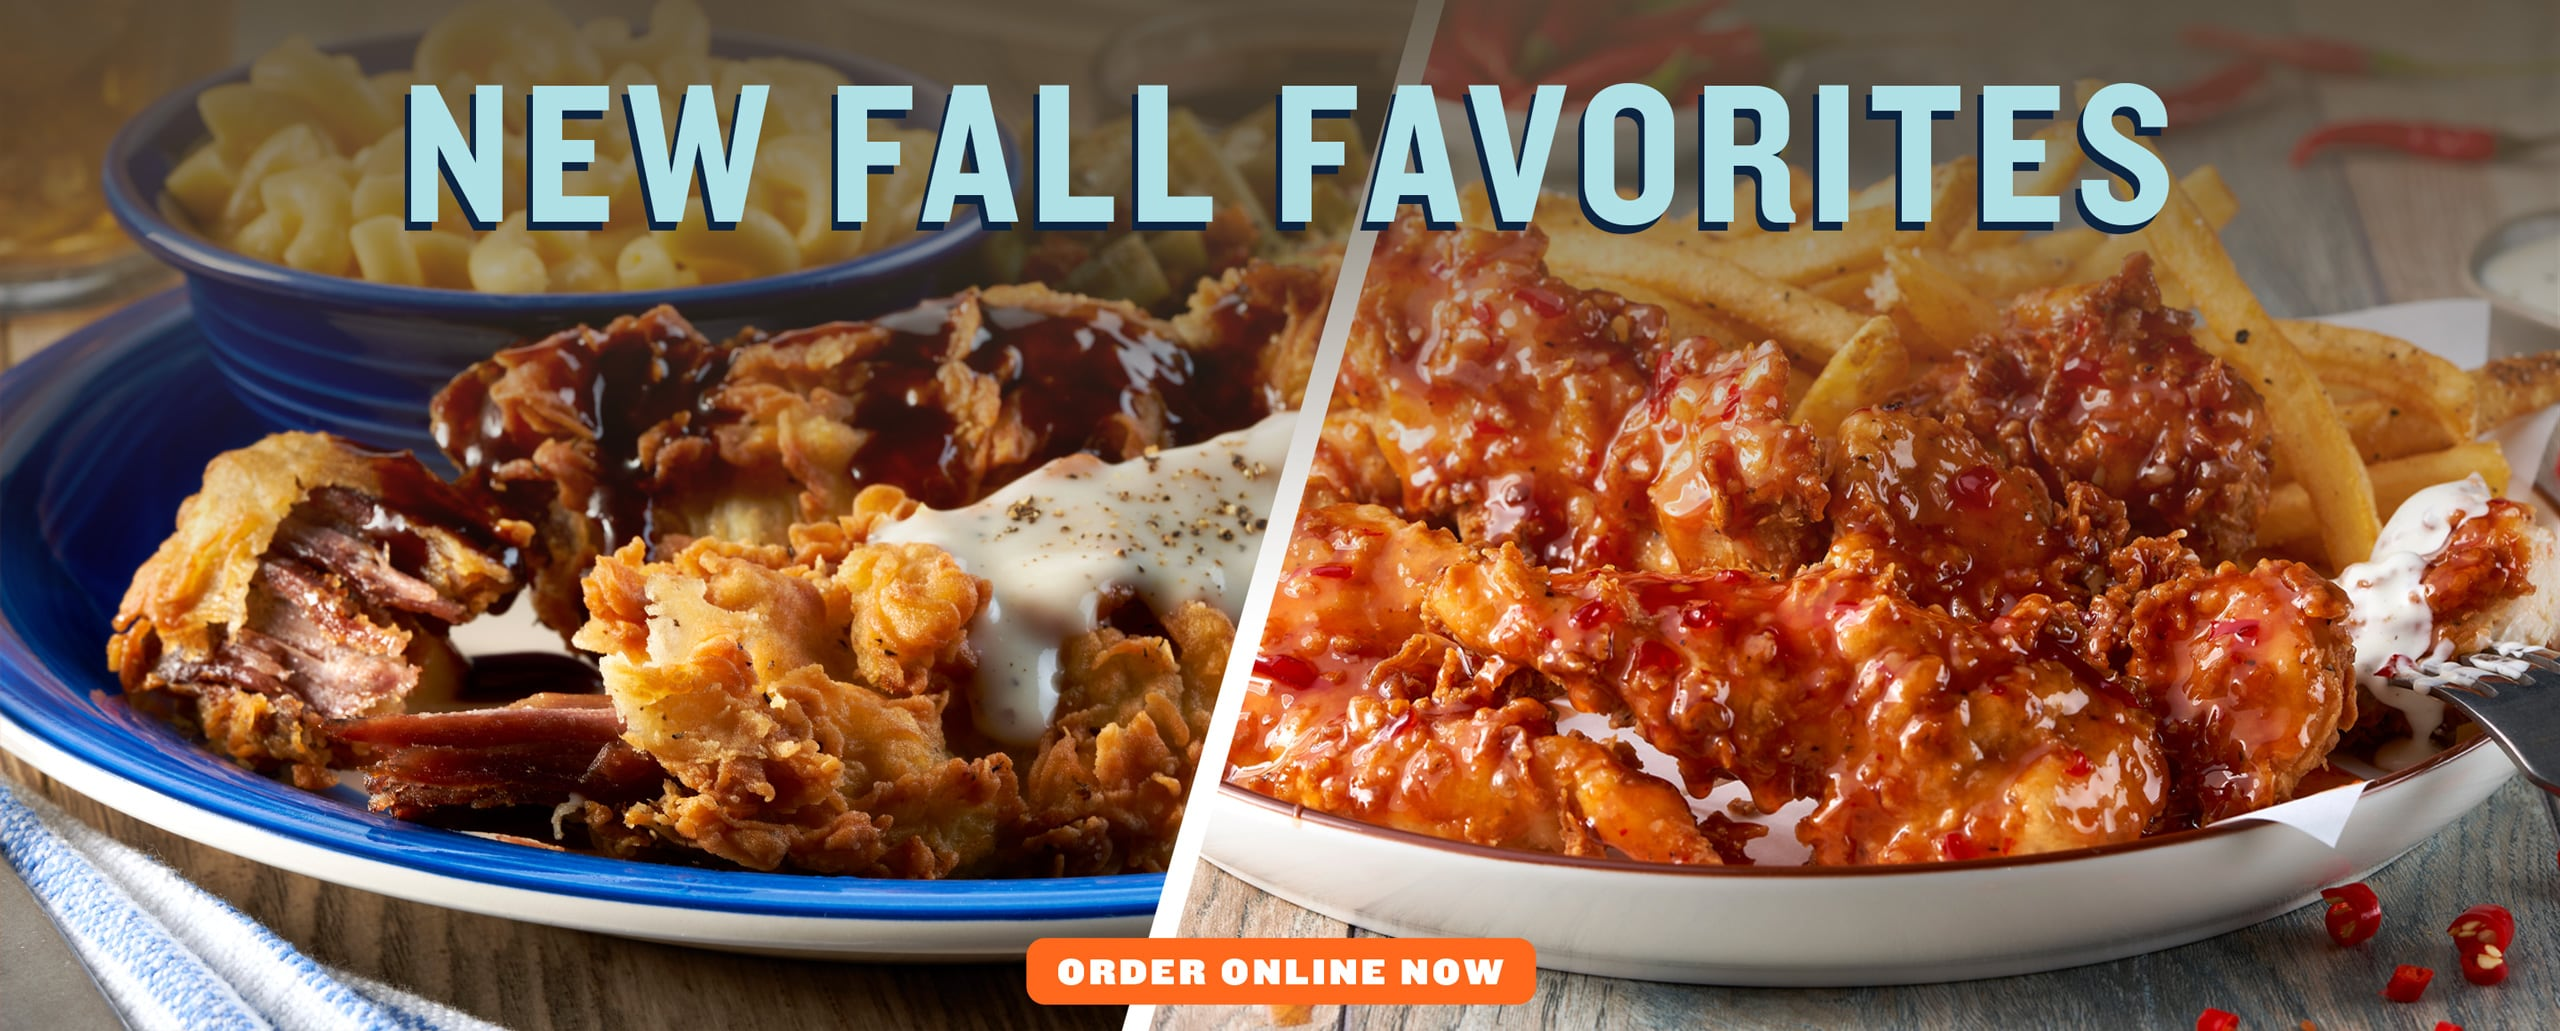 New Fall Flavors!